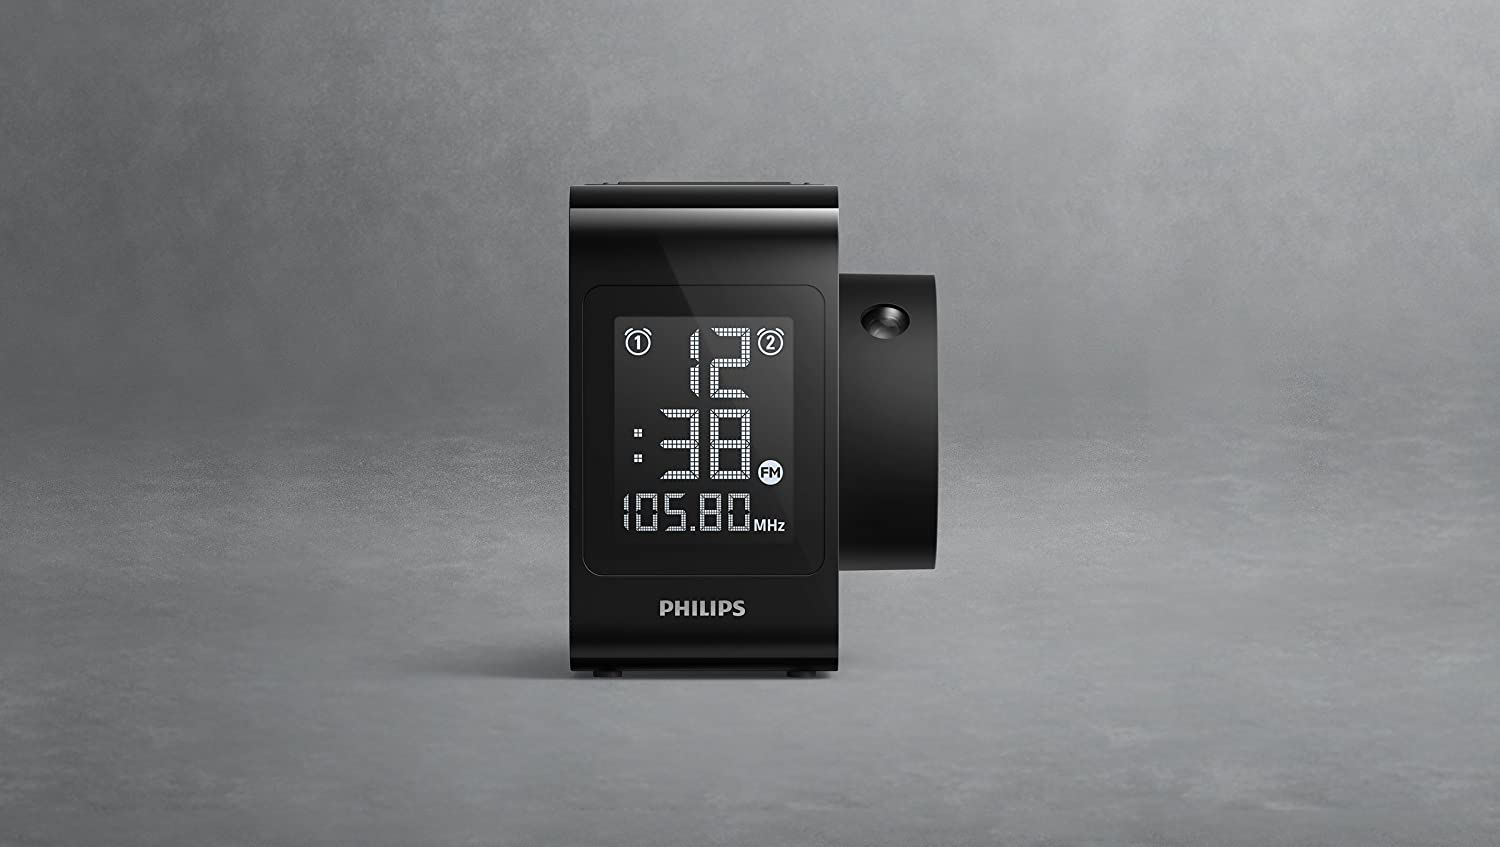 Philips AJ4800 - Radio Reloj con proyección de Hora (Radio Digital, Alarma Dual), Color Negro: Philips: Amazon.es: Electrónica